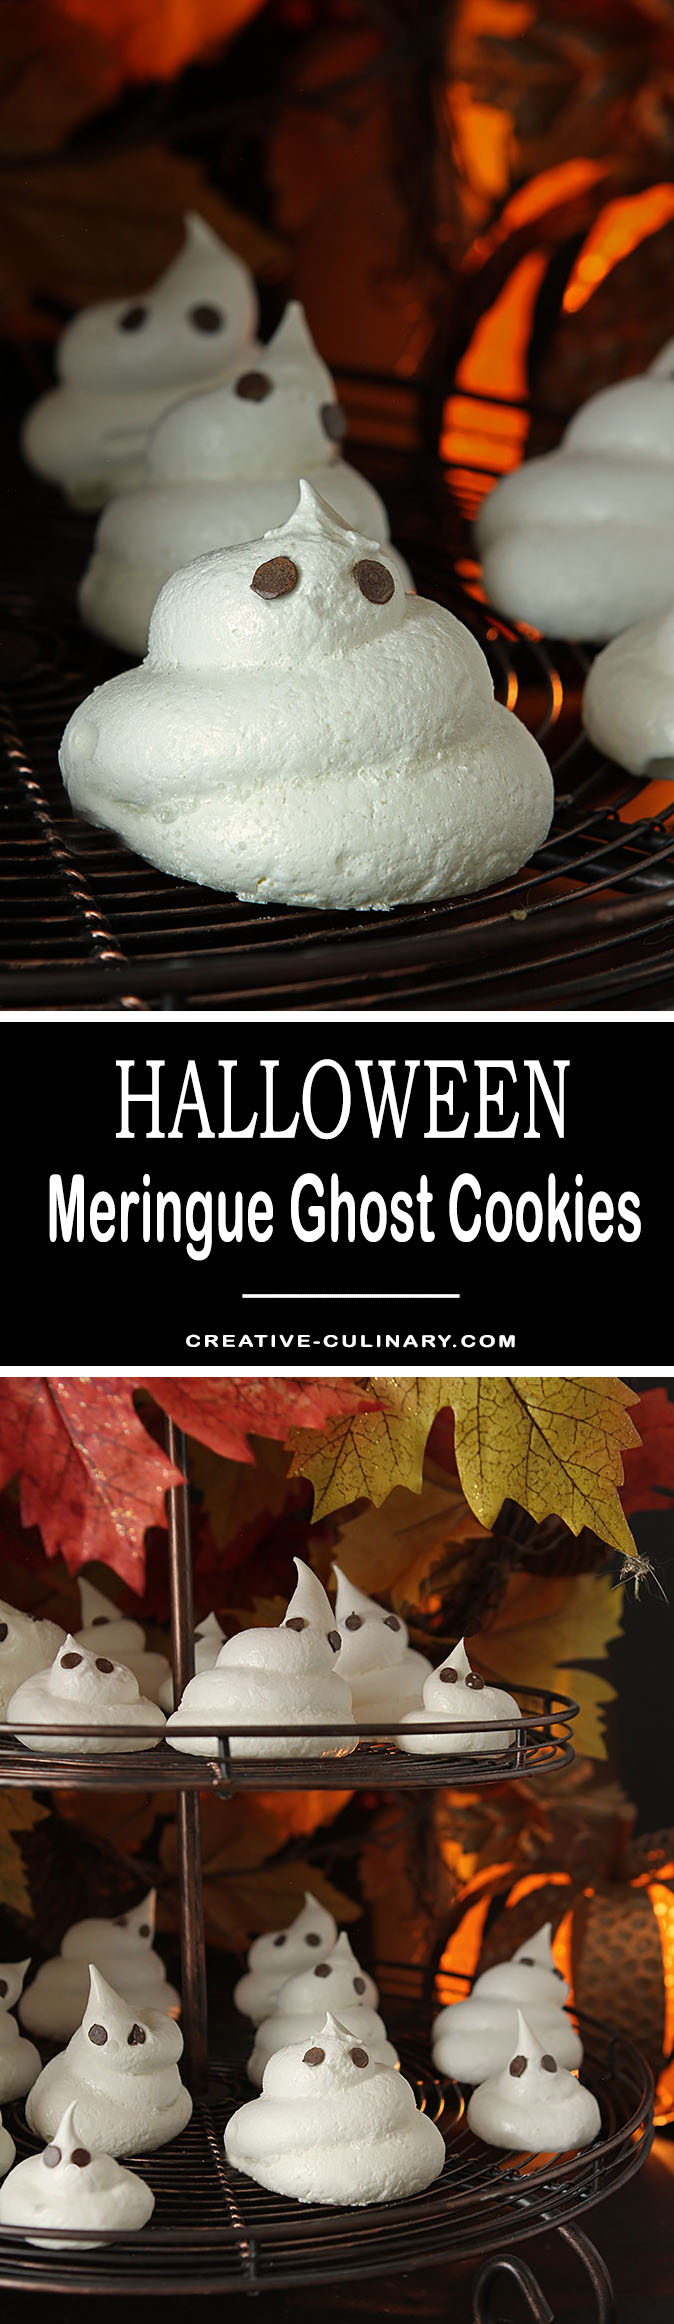 These Meringue Ghost Cookies are so easy to make; little hands can help. The perfect Halloween treat for kids of all ages!